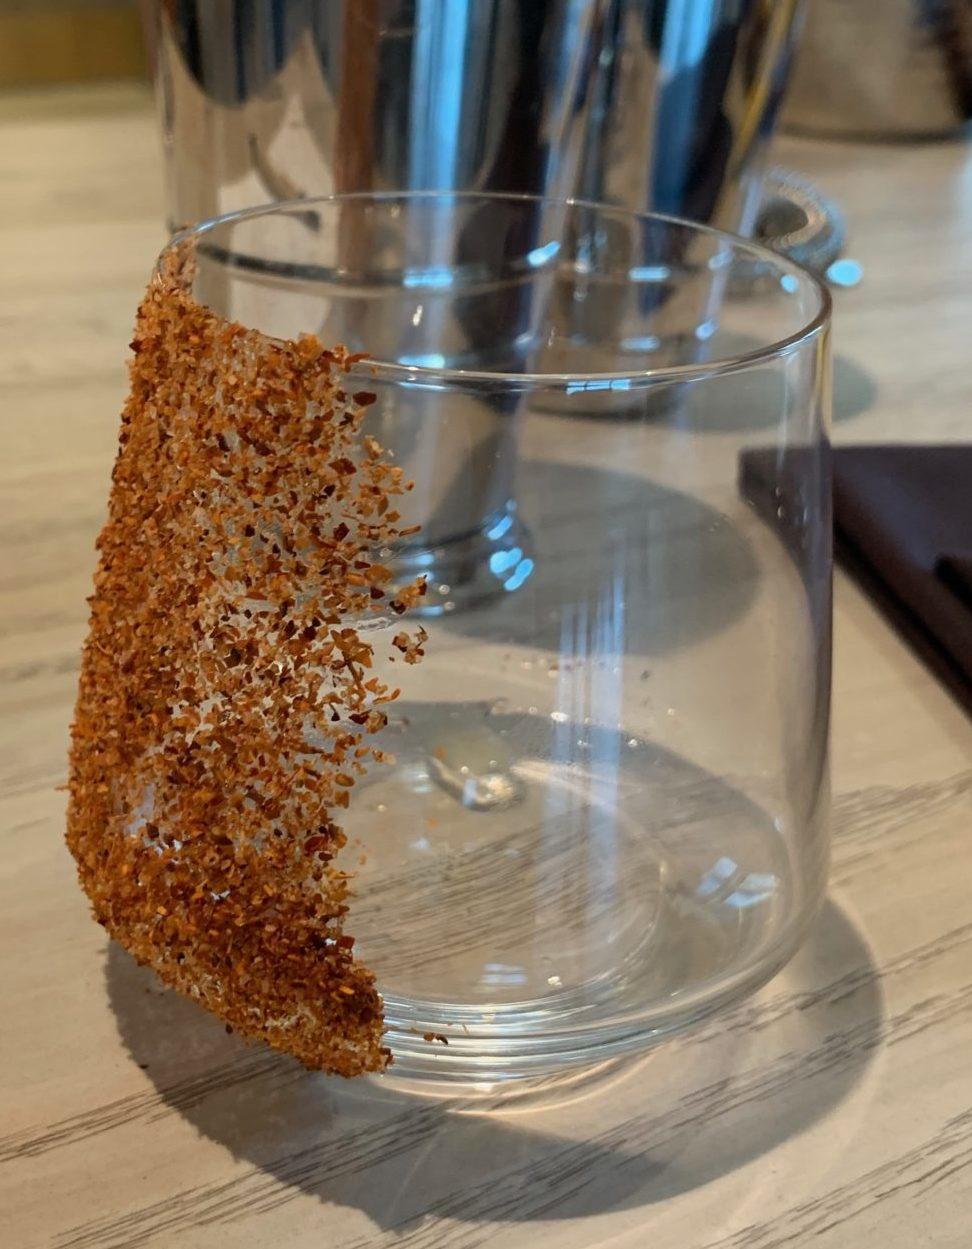 glass dipped in spice mixture